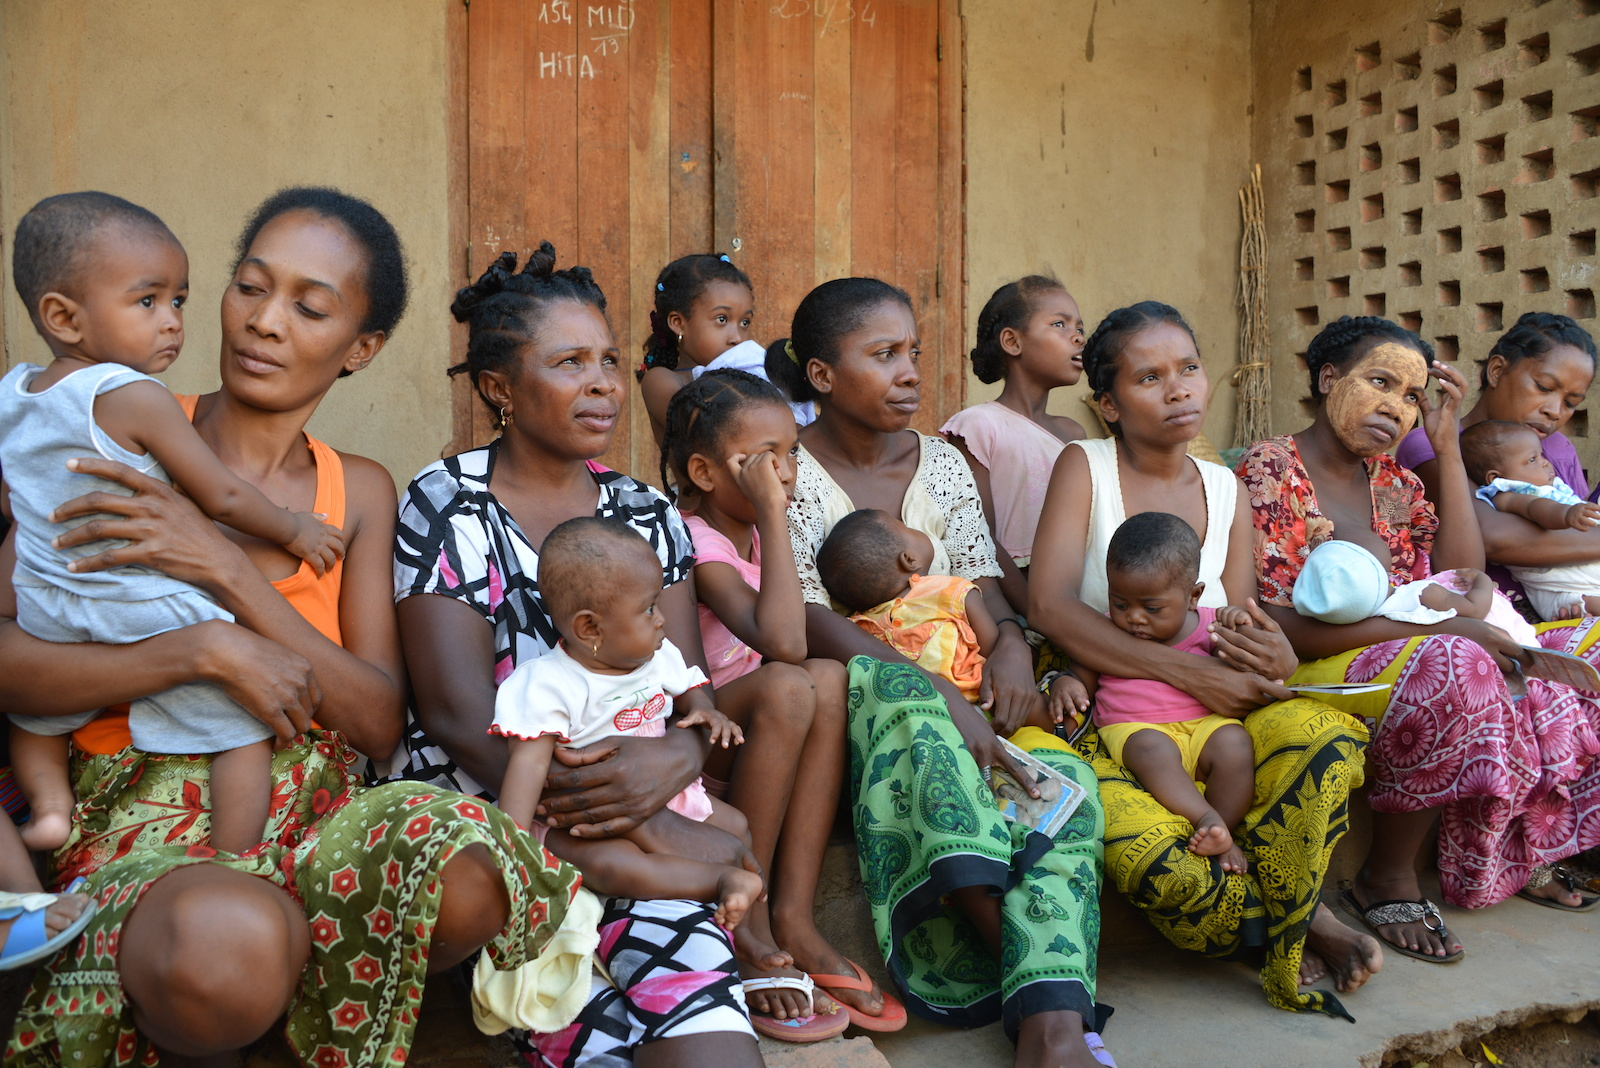 Mothers and children in Madagascar no longer need fear maternal and neonatal tetanus (MNT).